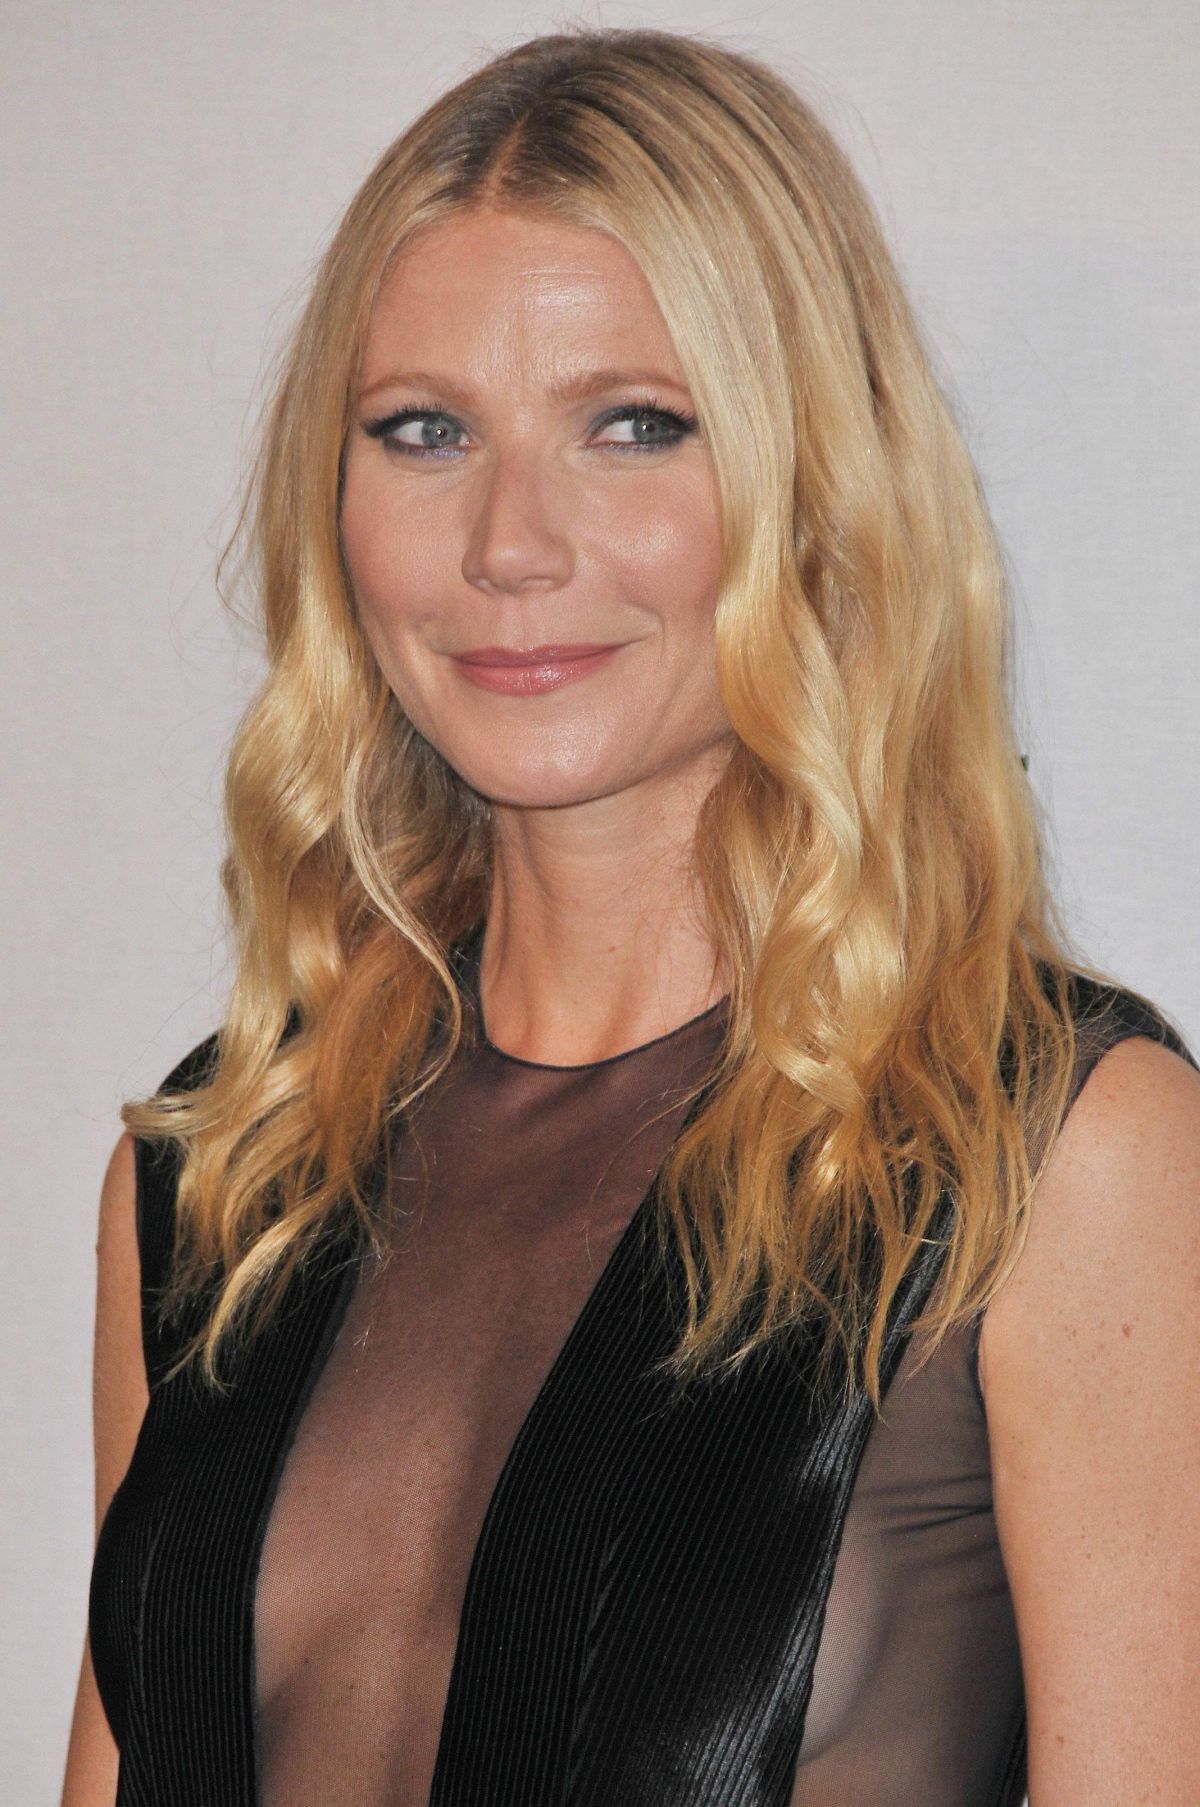 GWYNETH PALTROW at Celebration of an Icon Global Event in Los Angeles 10/13/2015